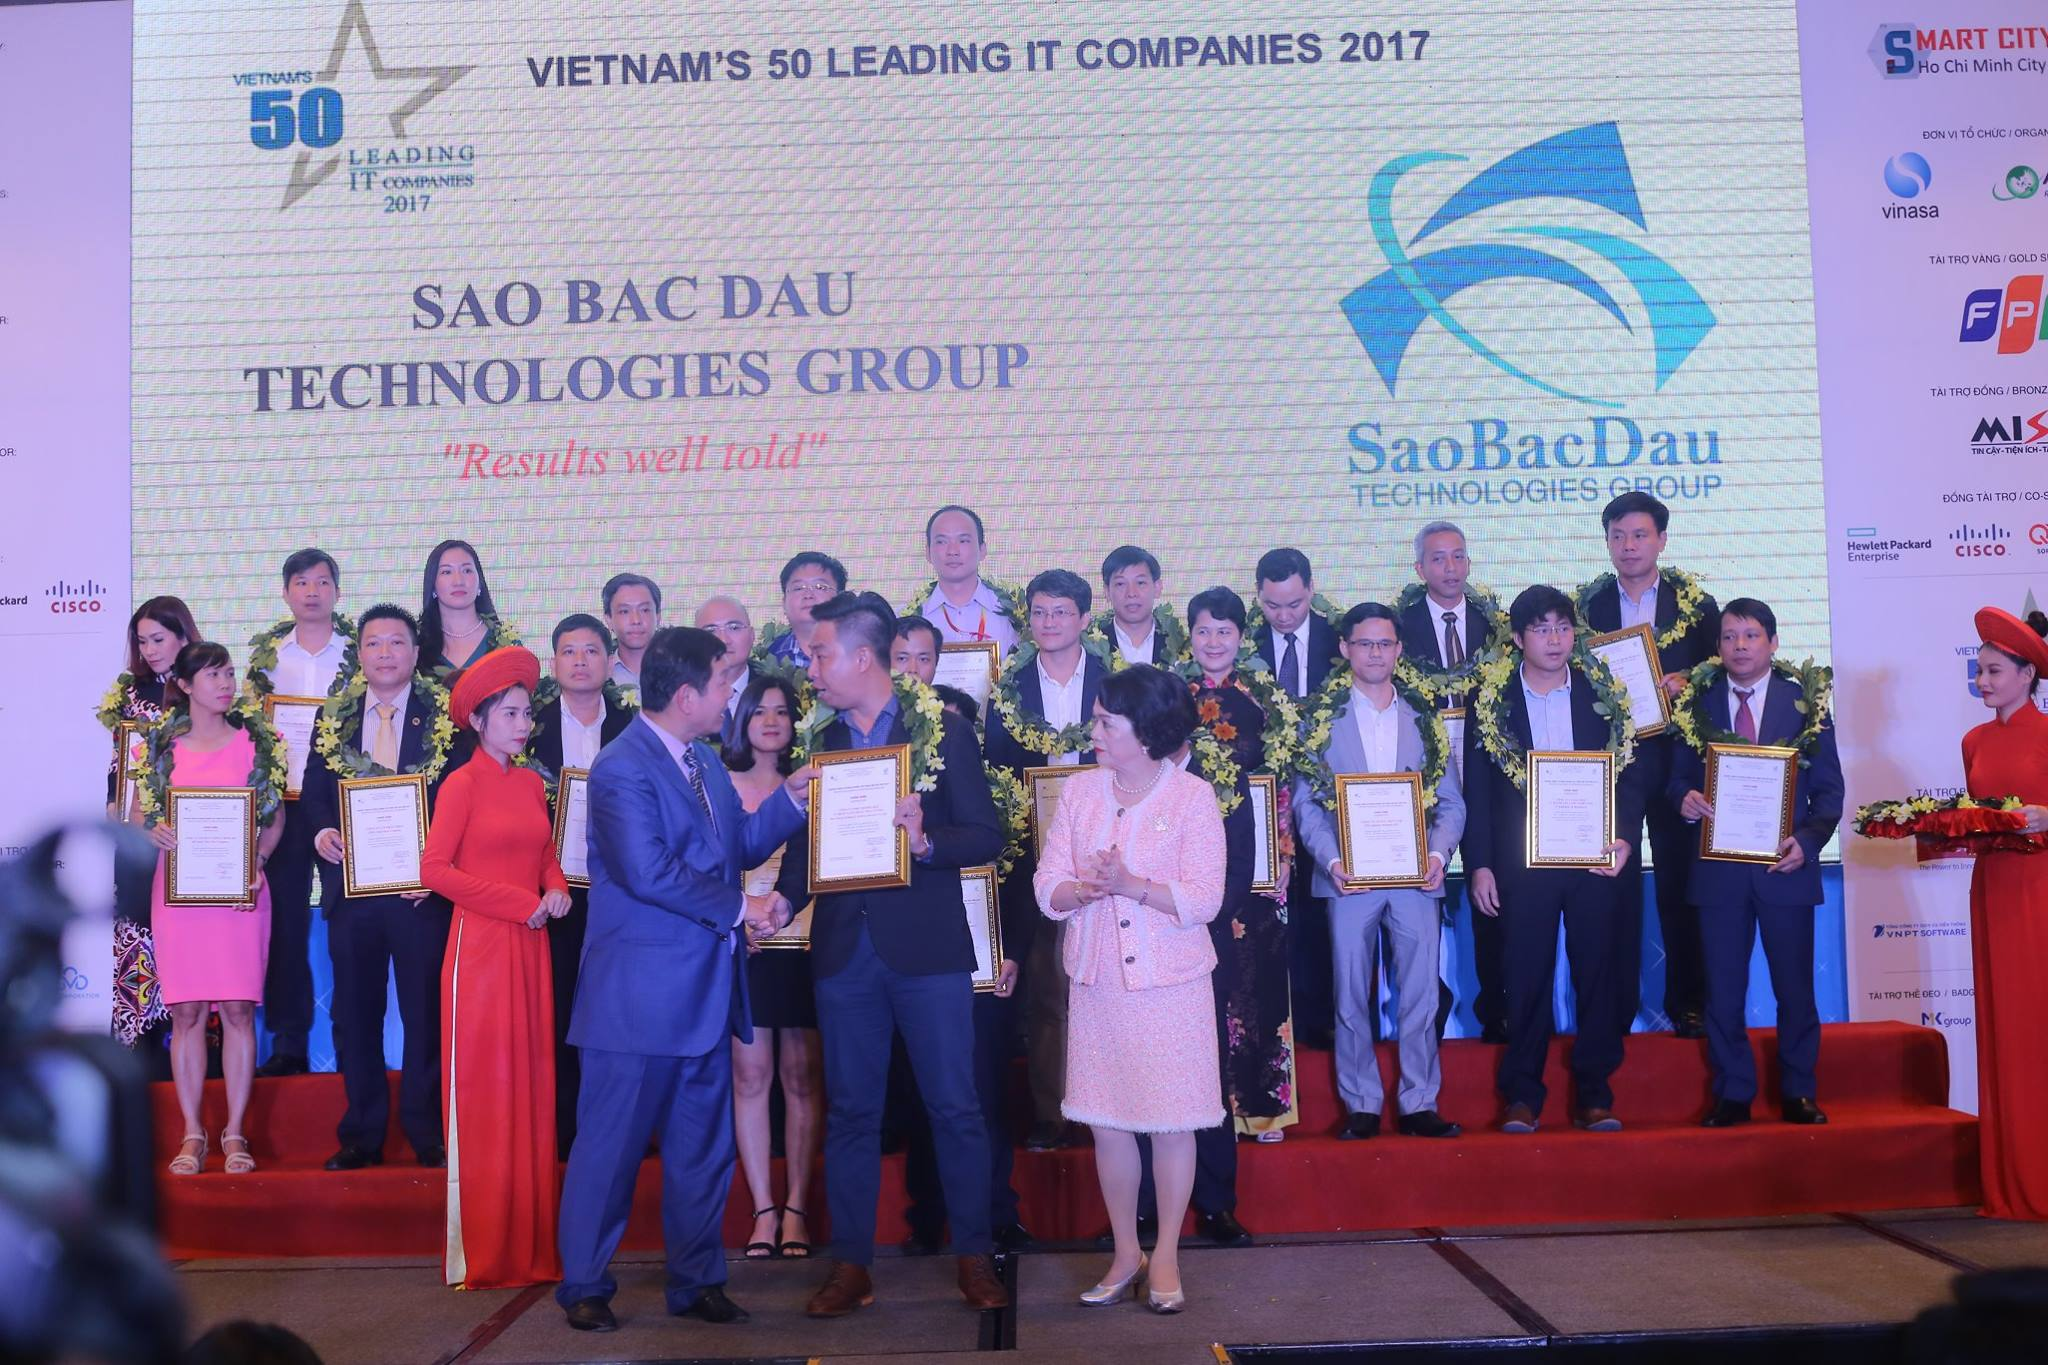 Sao Dau Continues To Be Among The Top 50 IT Enterprises In Vietnam